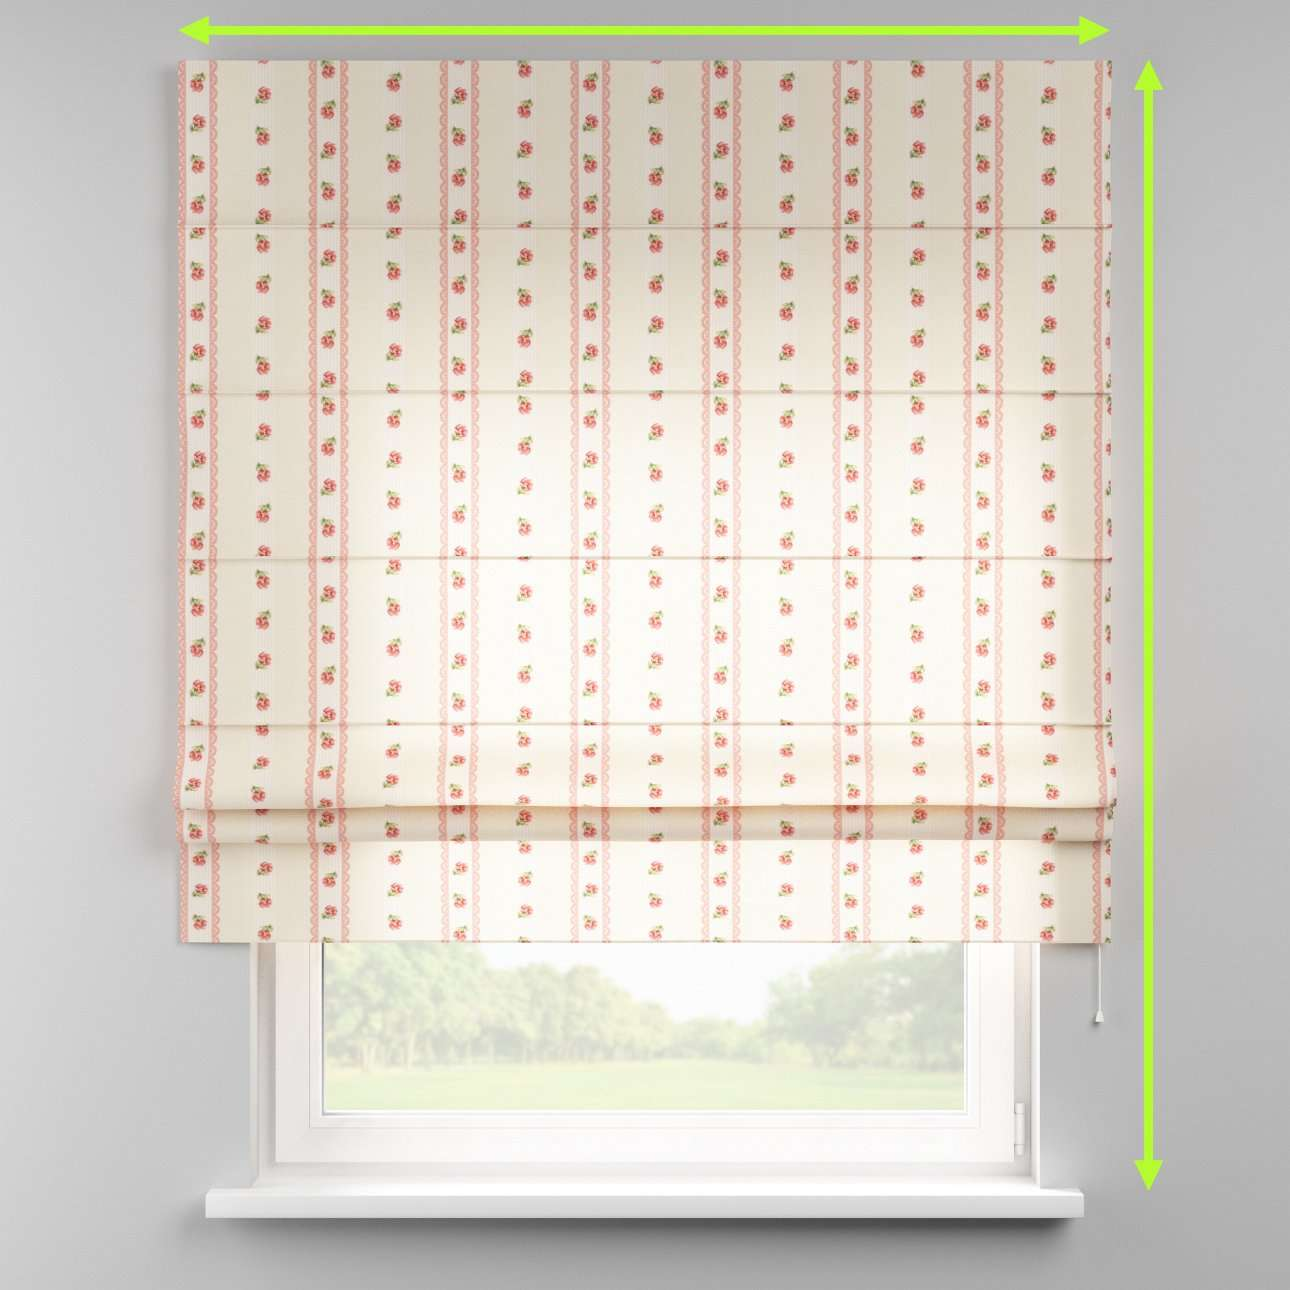 Padva roman blind  in collection Ashley, fabric: 137-48